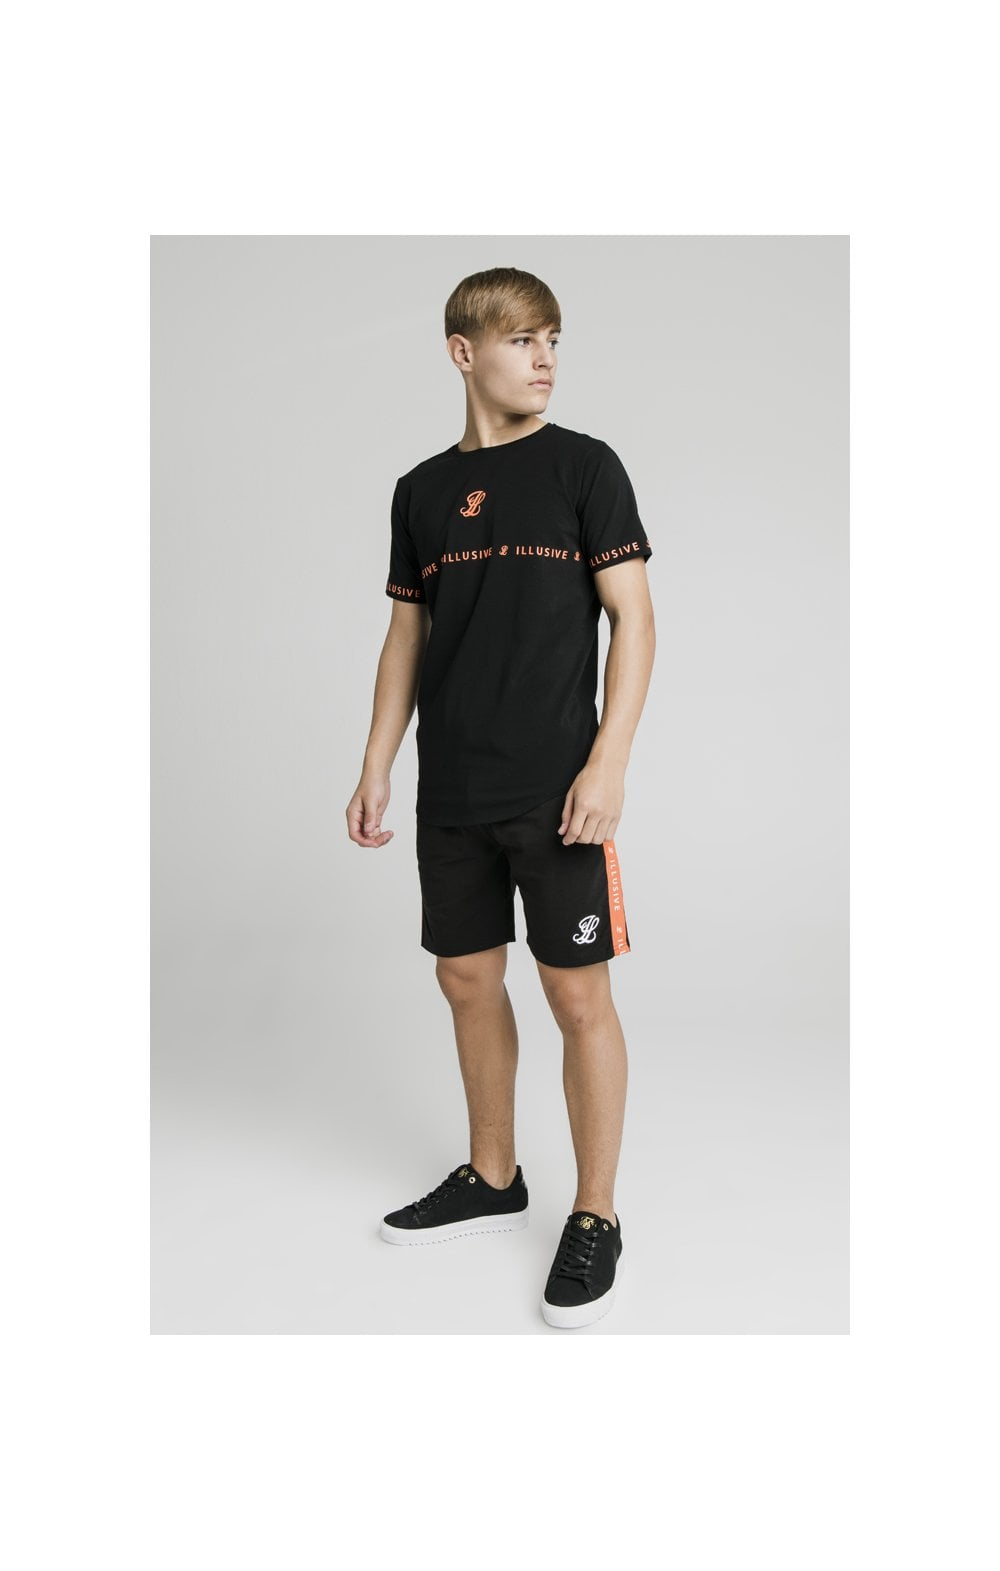 Illusive London Tape Tee - Black (4)